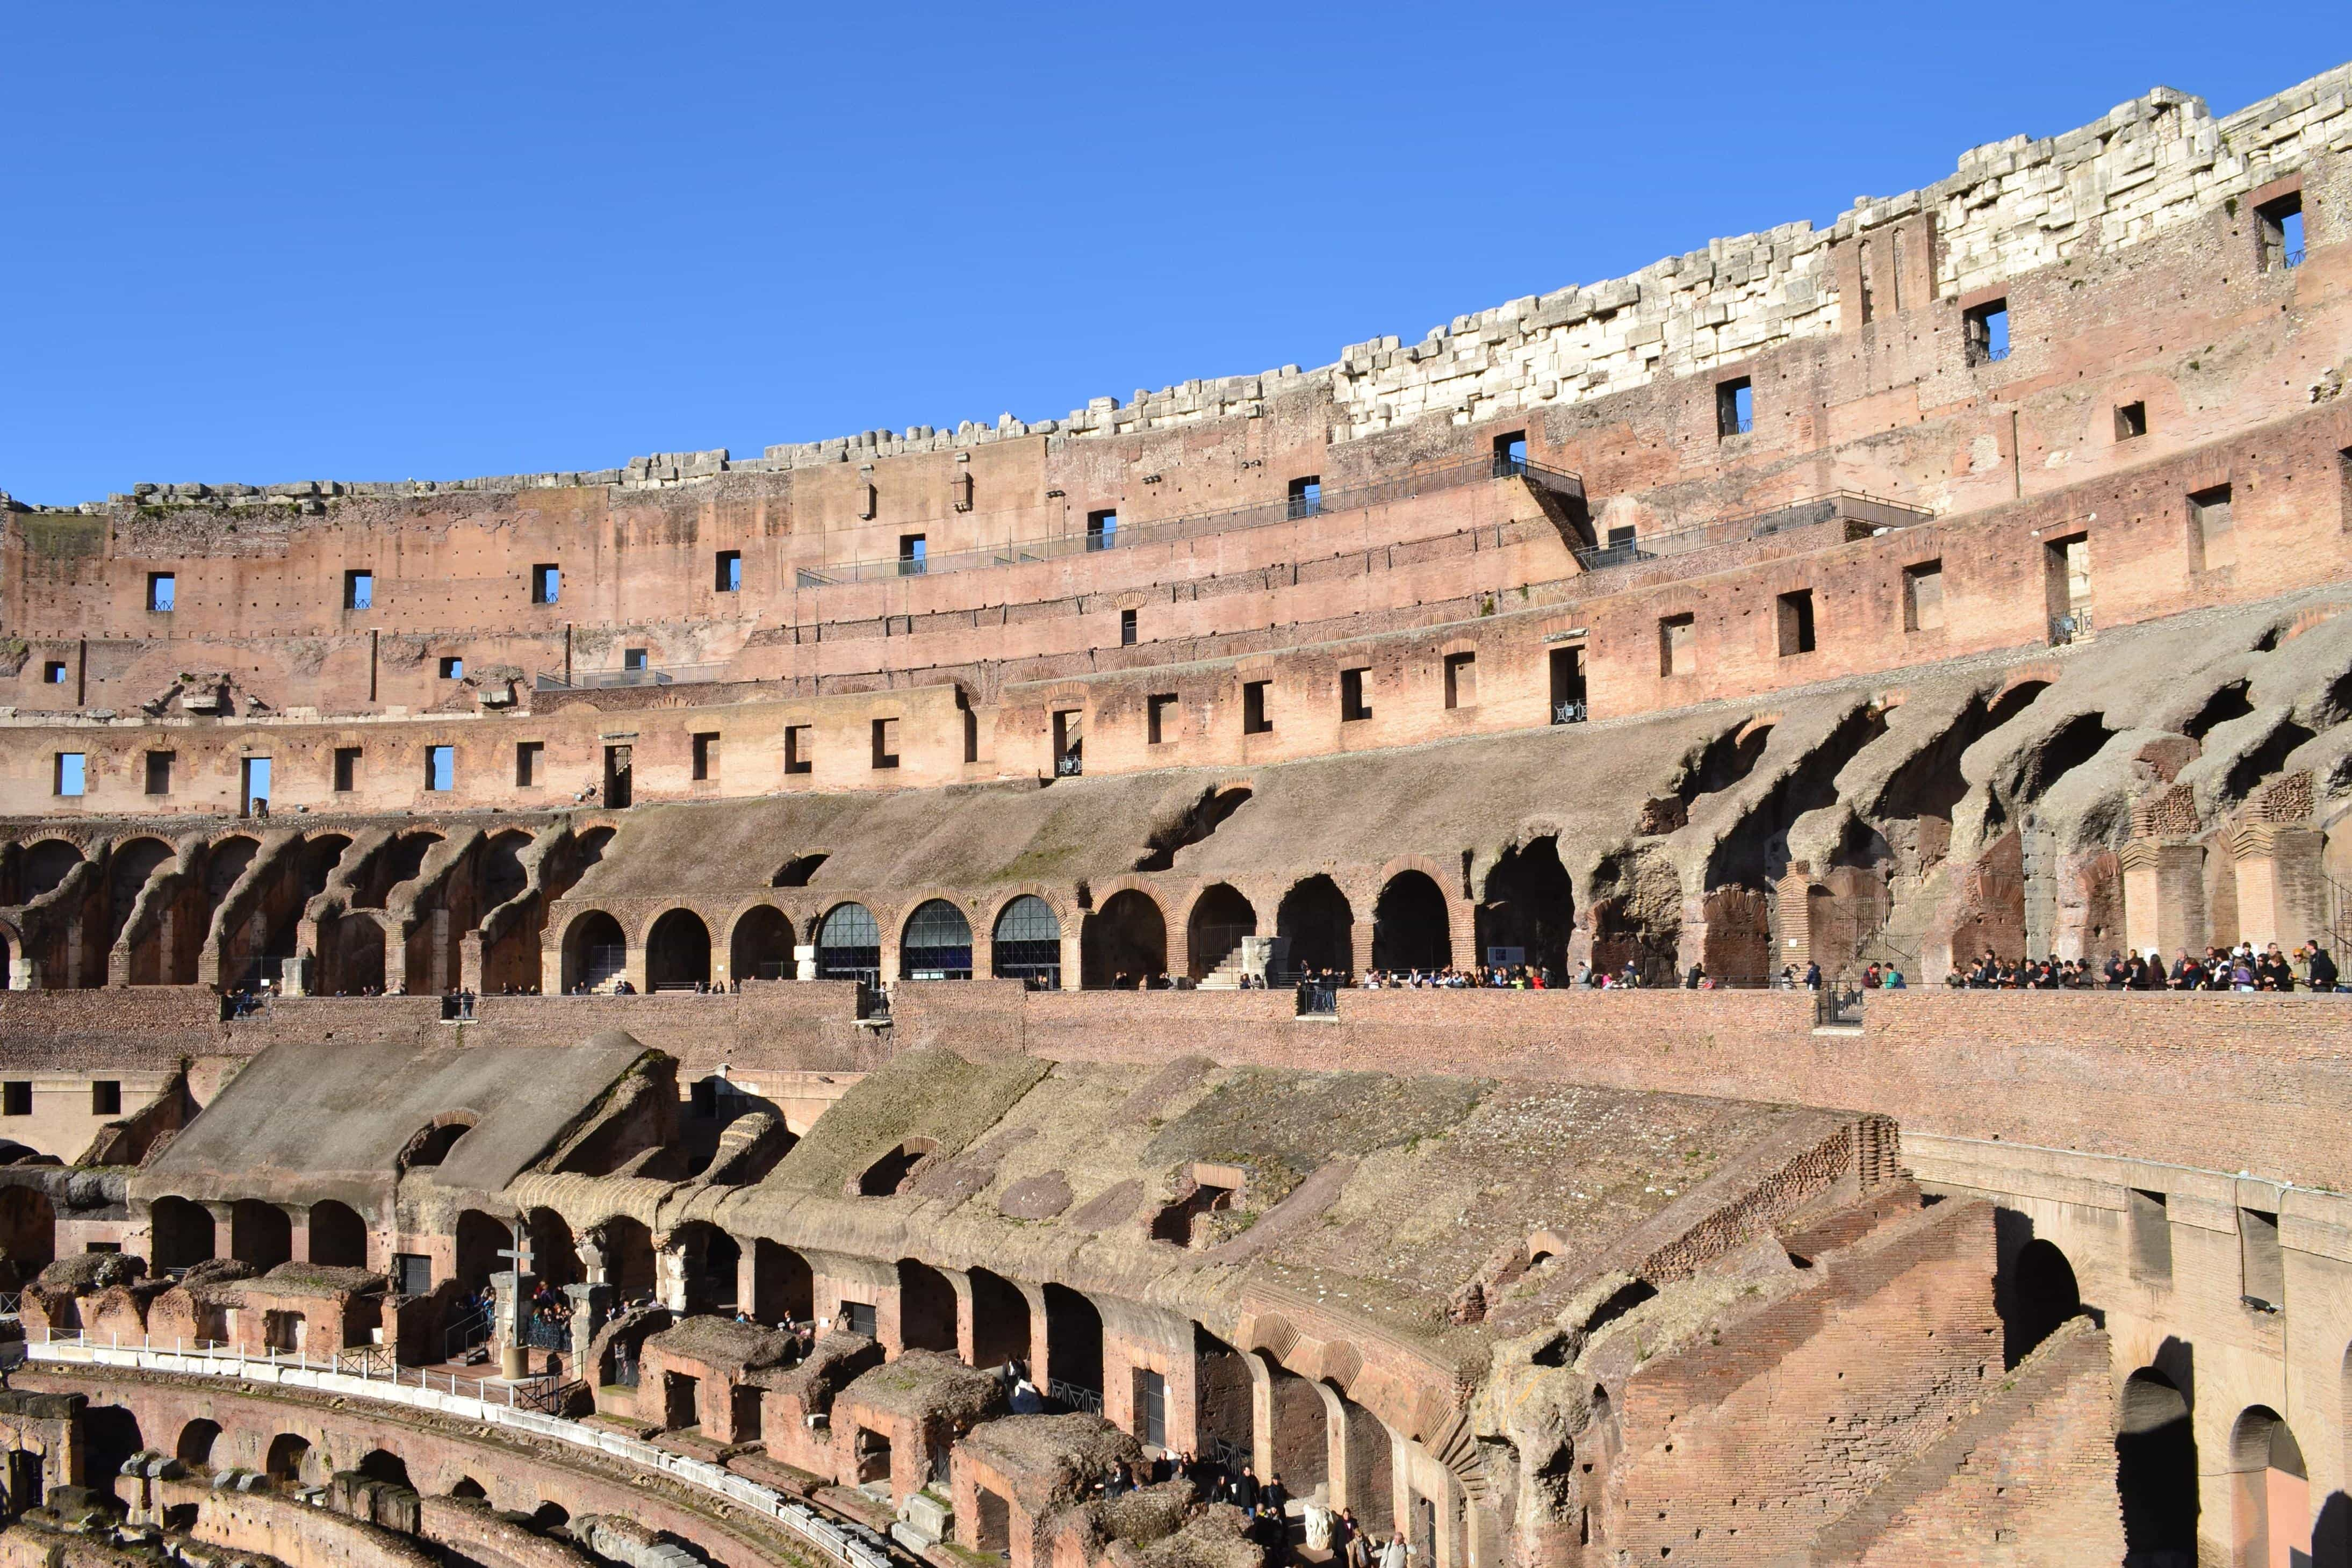 Free picture: amphitheater, stadium, Rome, Italy, medieval